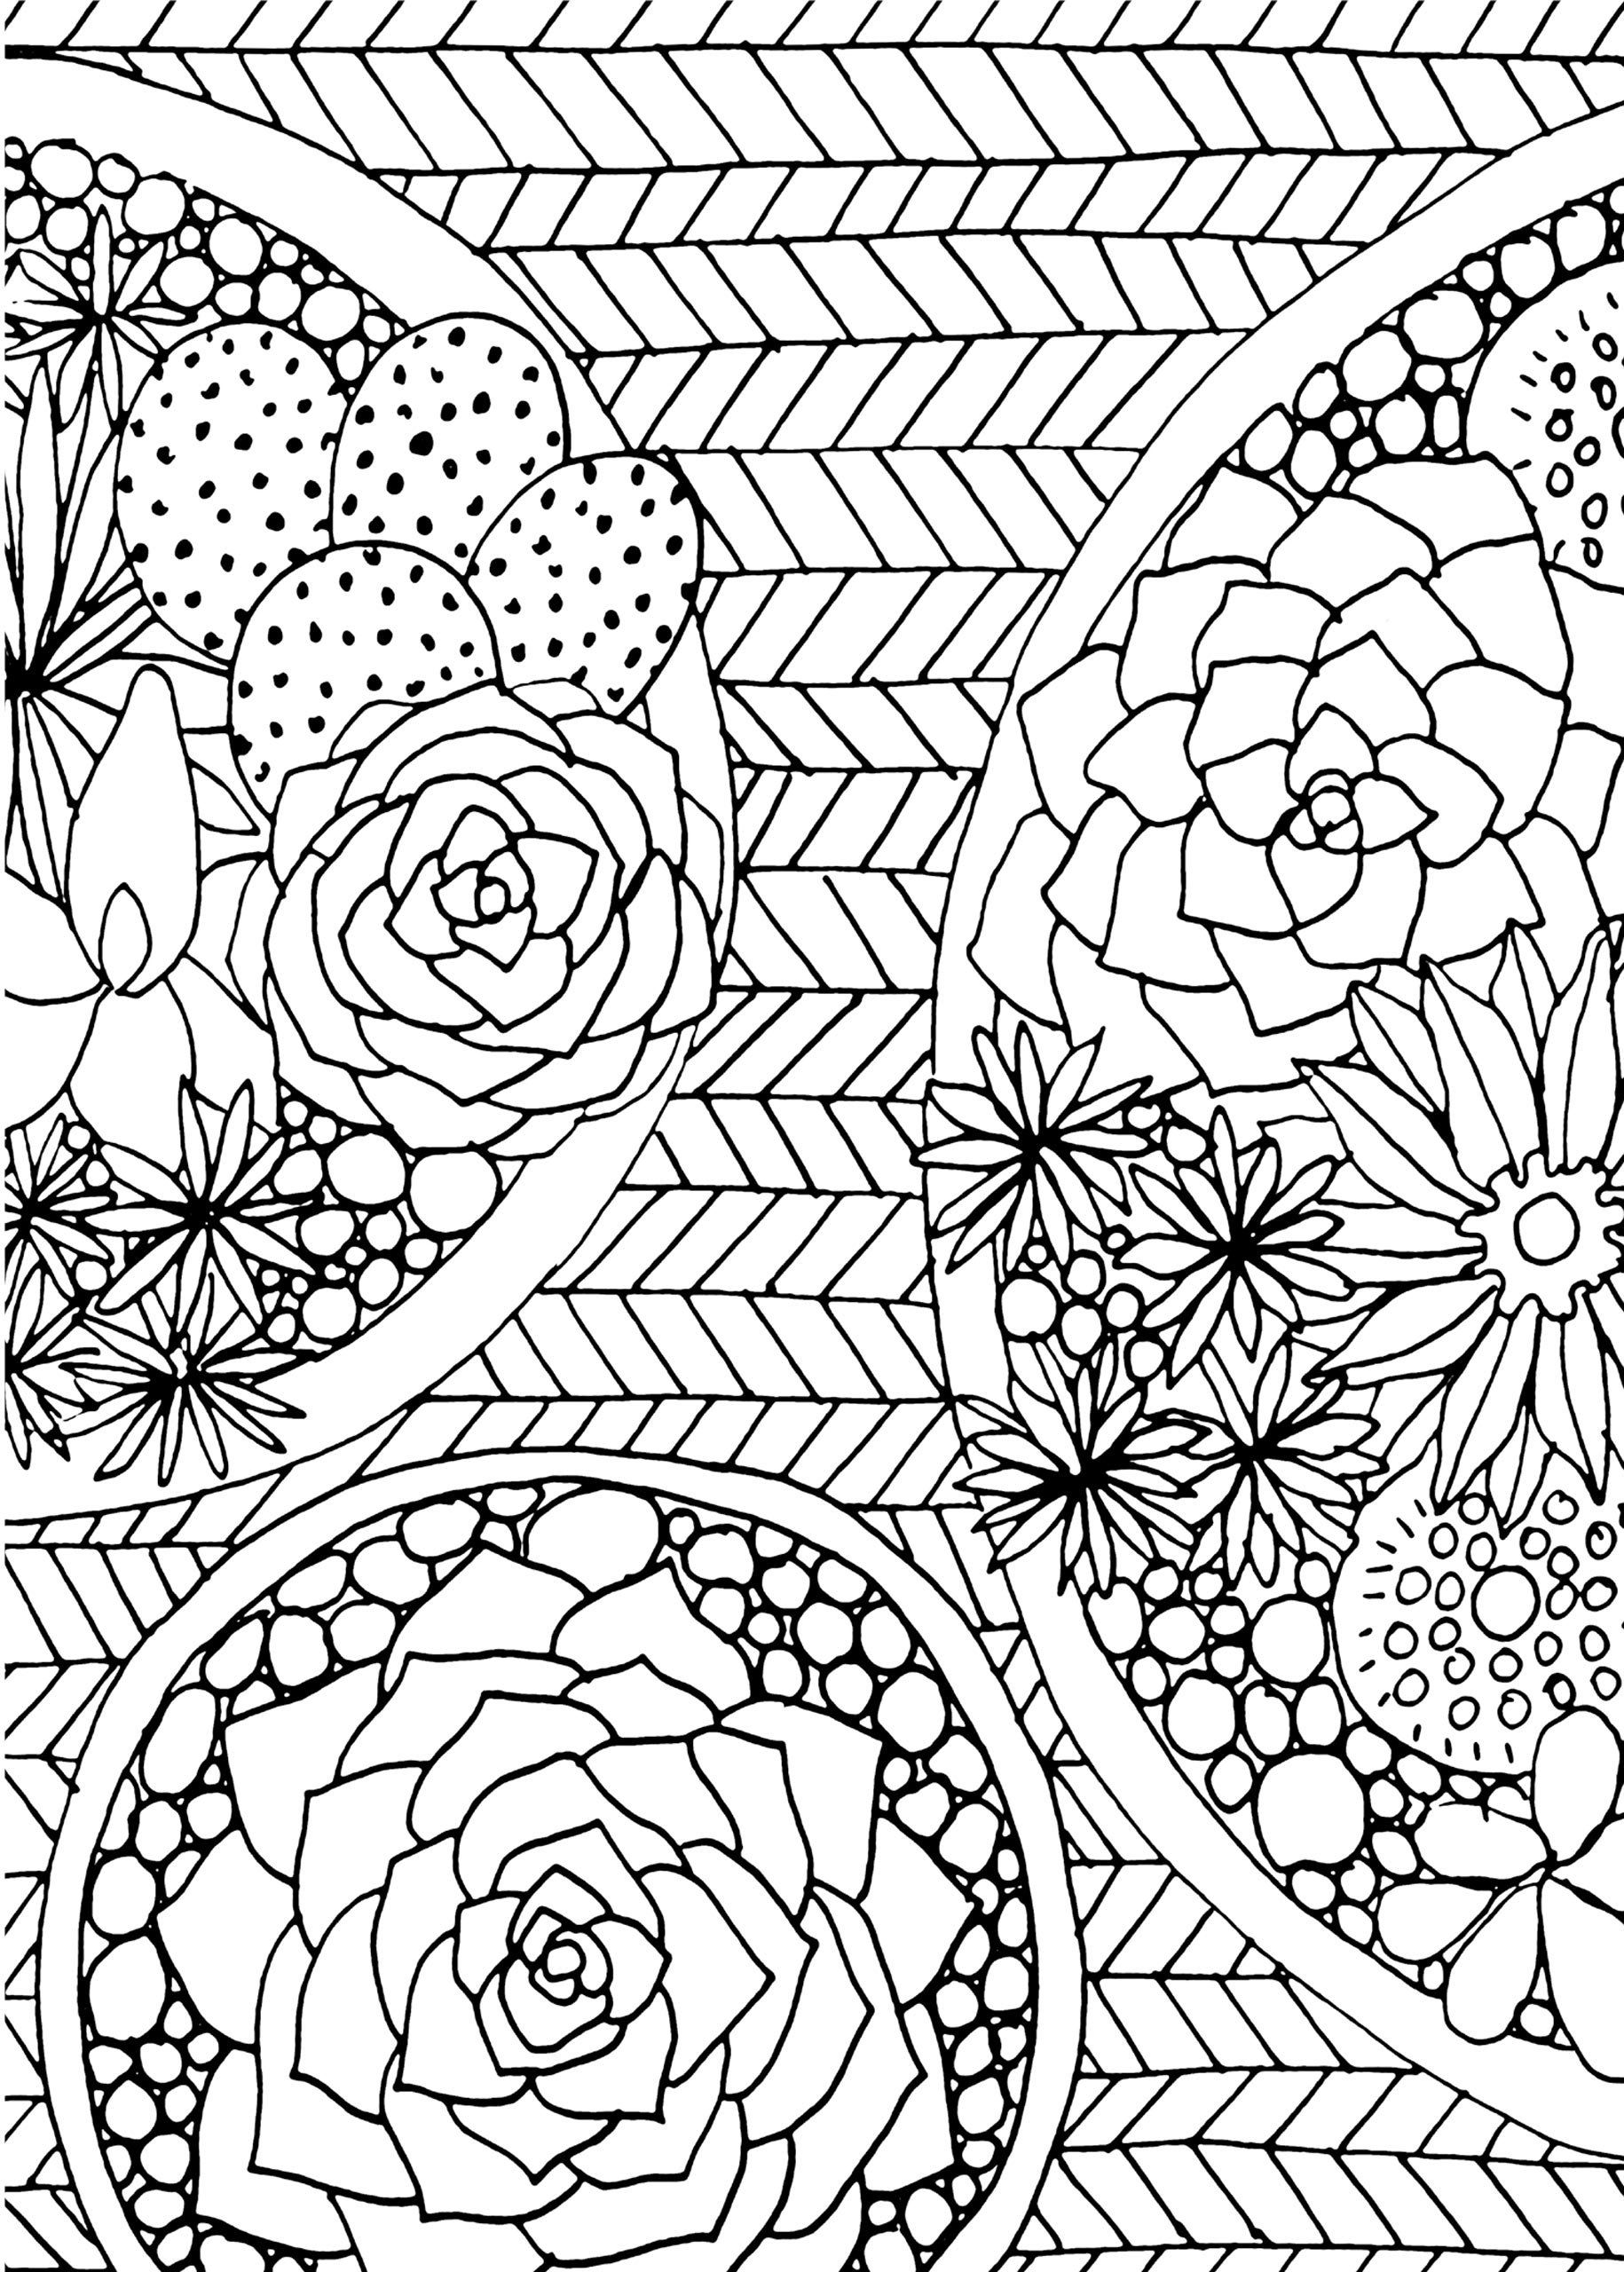 adults color coloring books pin on casita en tucson adults books coloring color